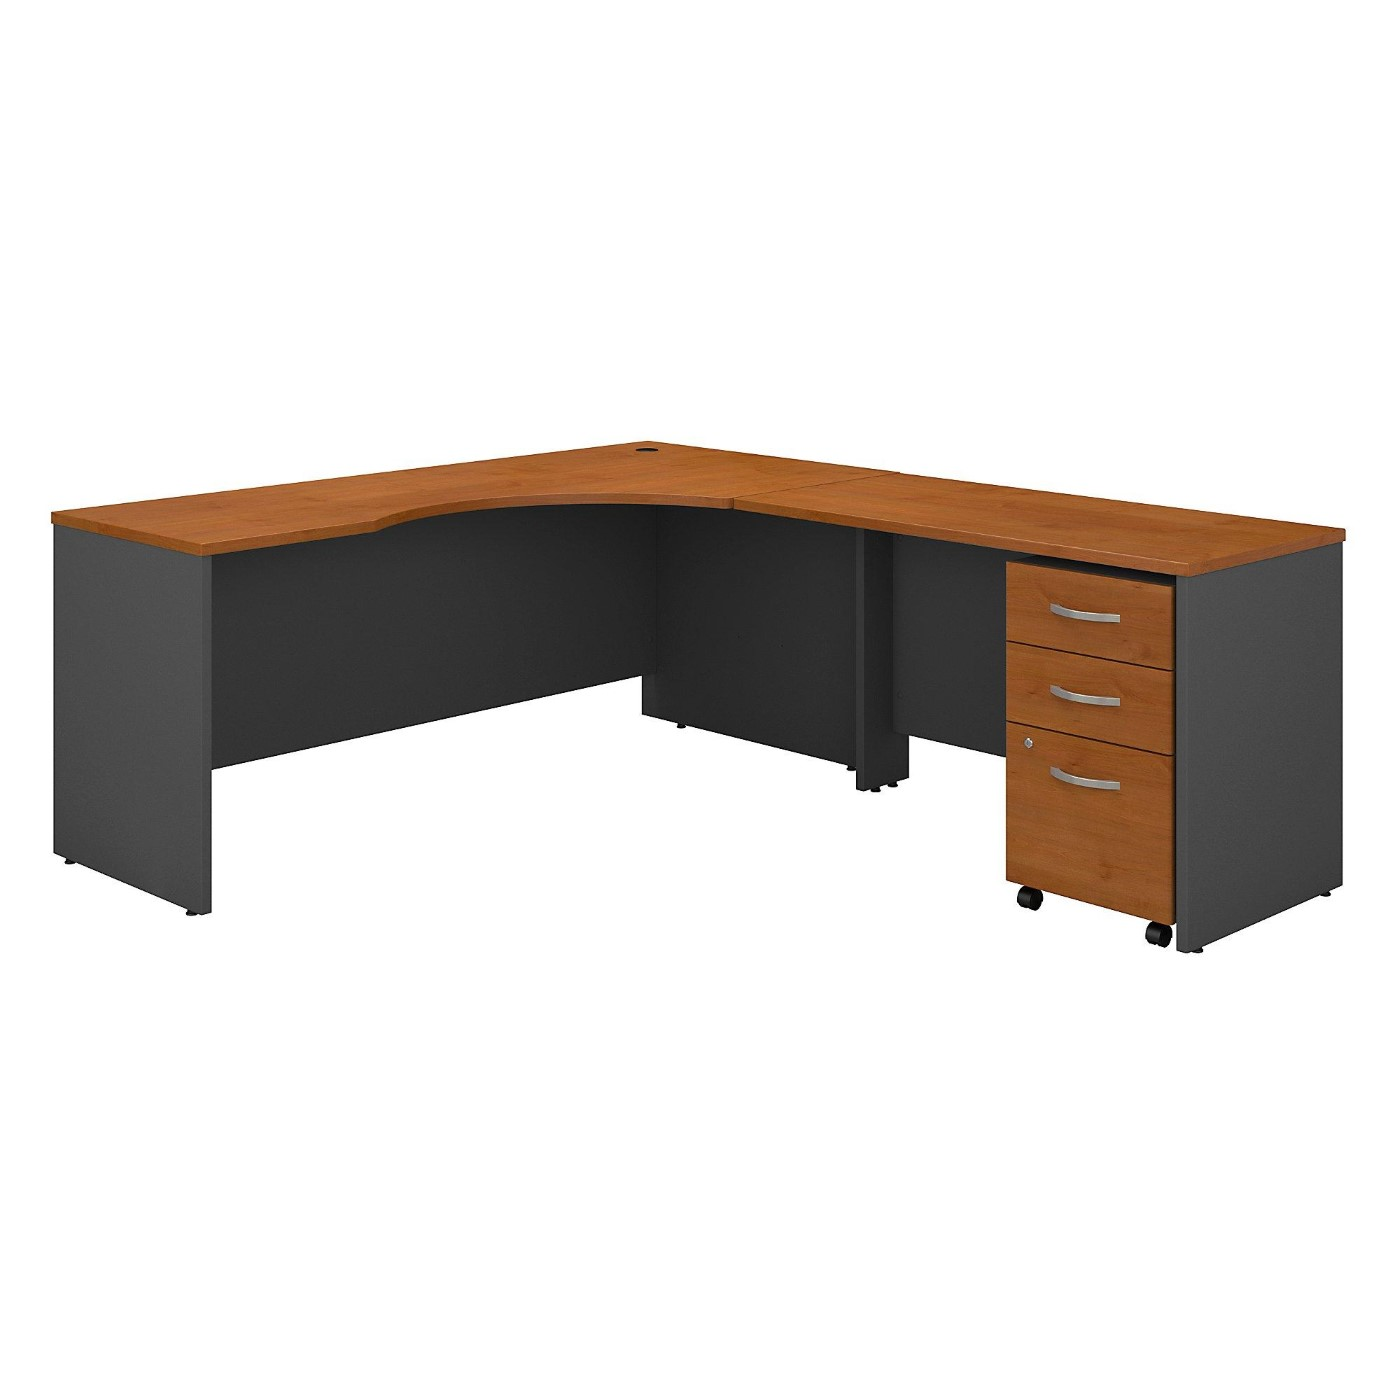 <font color=#c60><b>BUSH BUSINESS FURNITURE SERIES C 72W LEFT HANDED CORNER DESK WITH 48W RETURN AND MOBILE FILE CABINET. FREE SHIPPING</font></b></font></b>